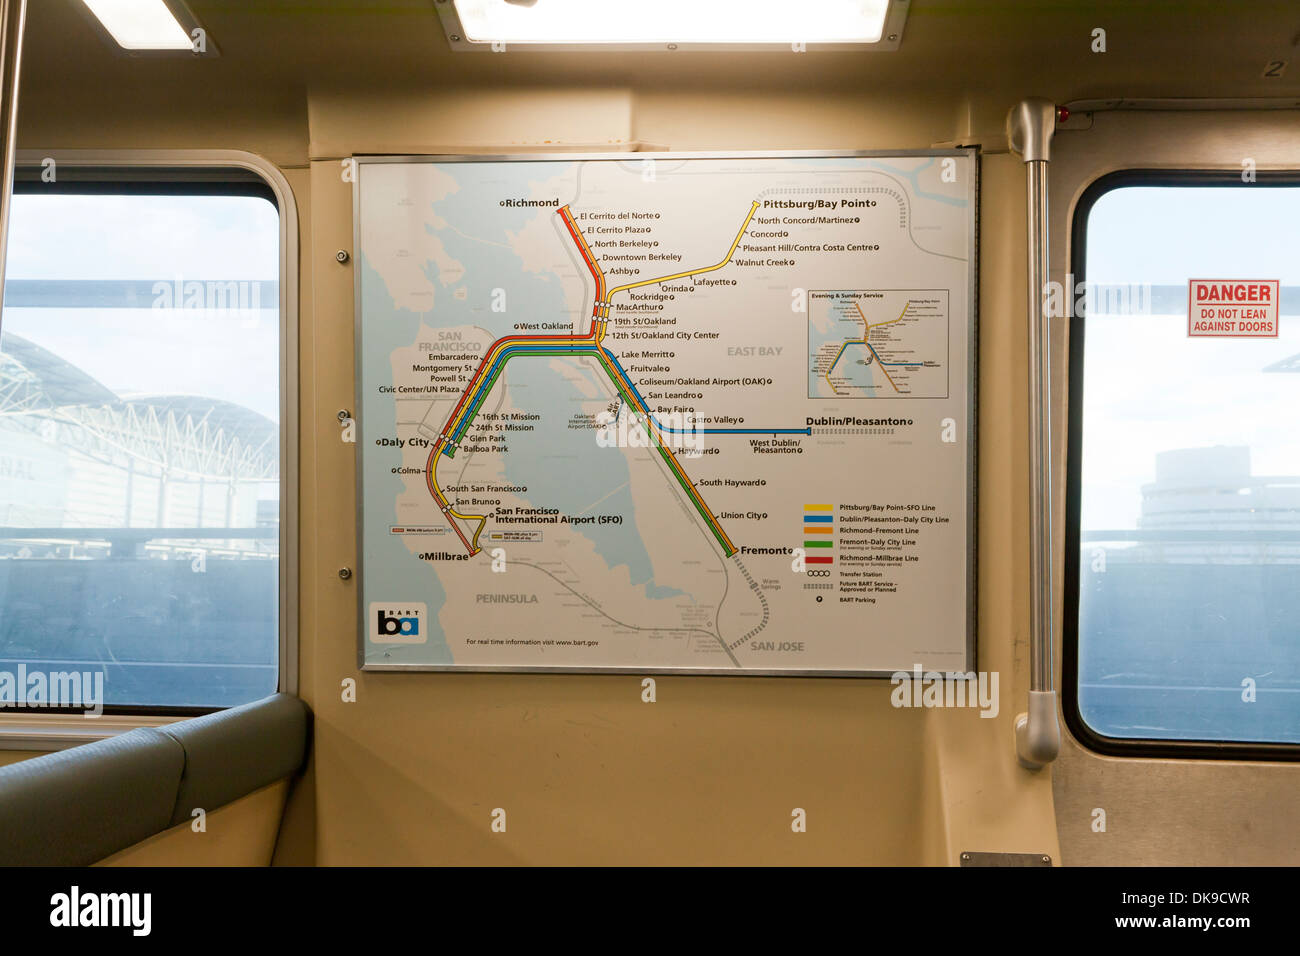 BART (Bay Area Rapid Transit) train route map posted in car - Stock Image